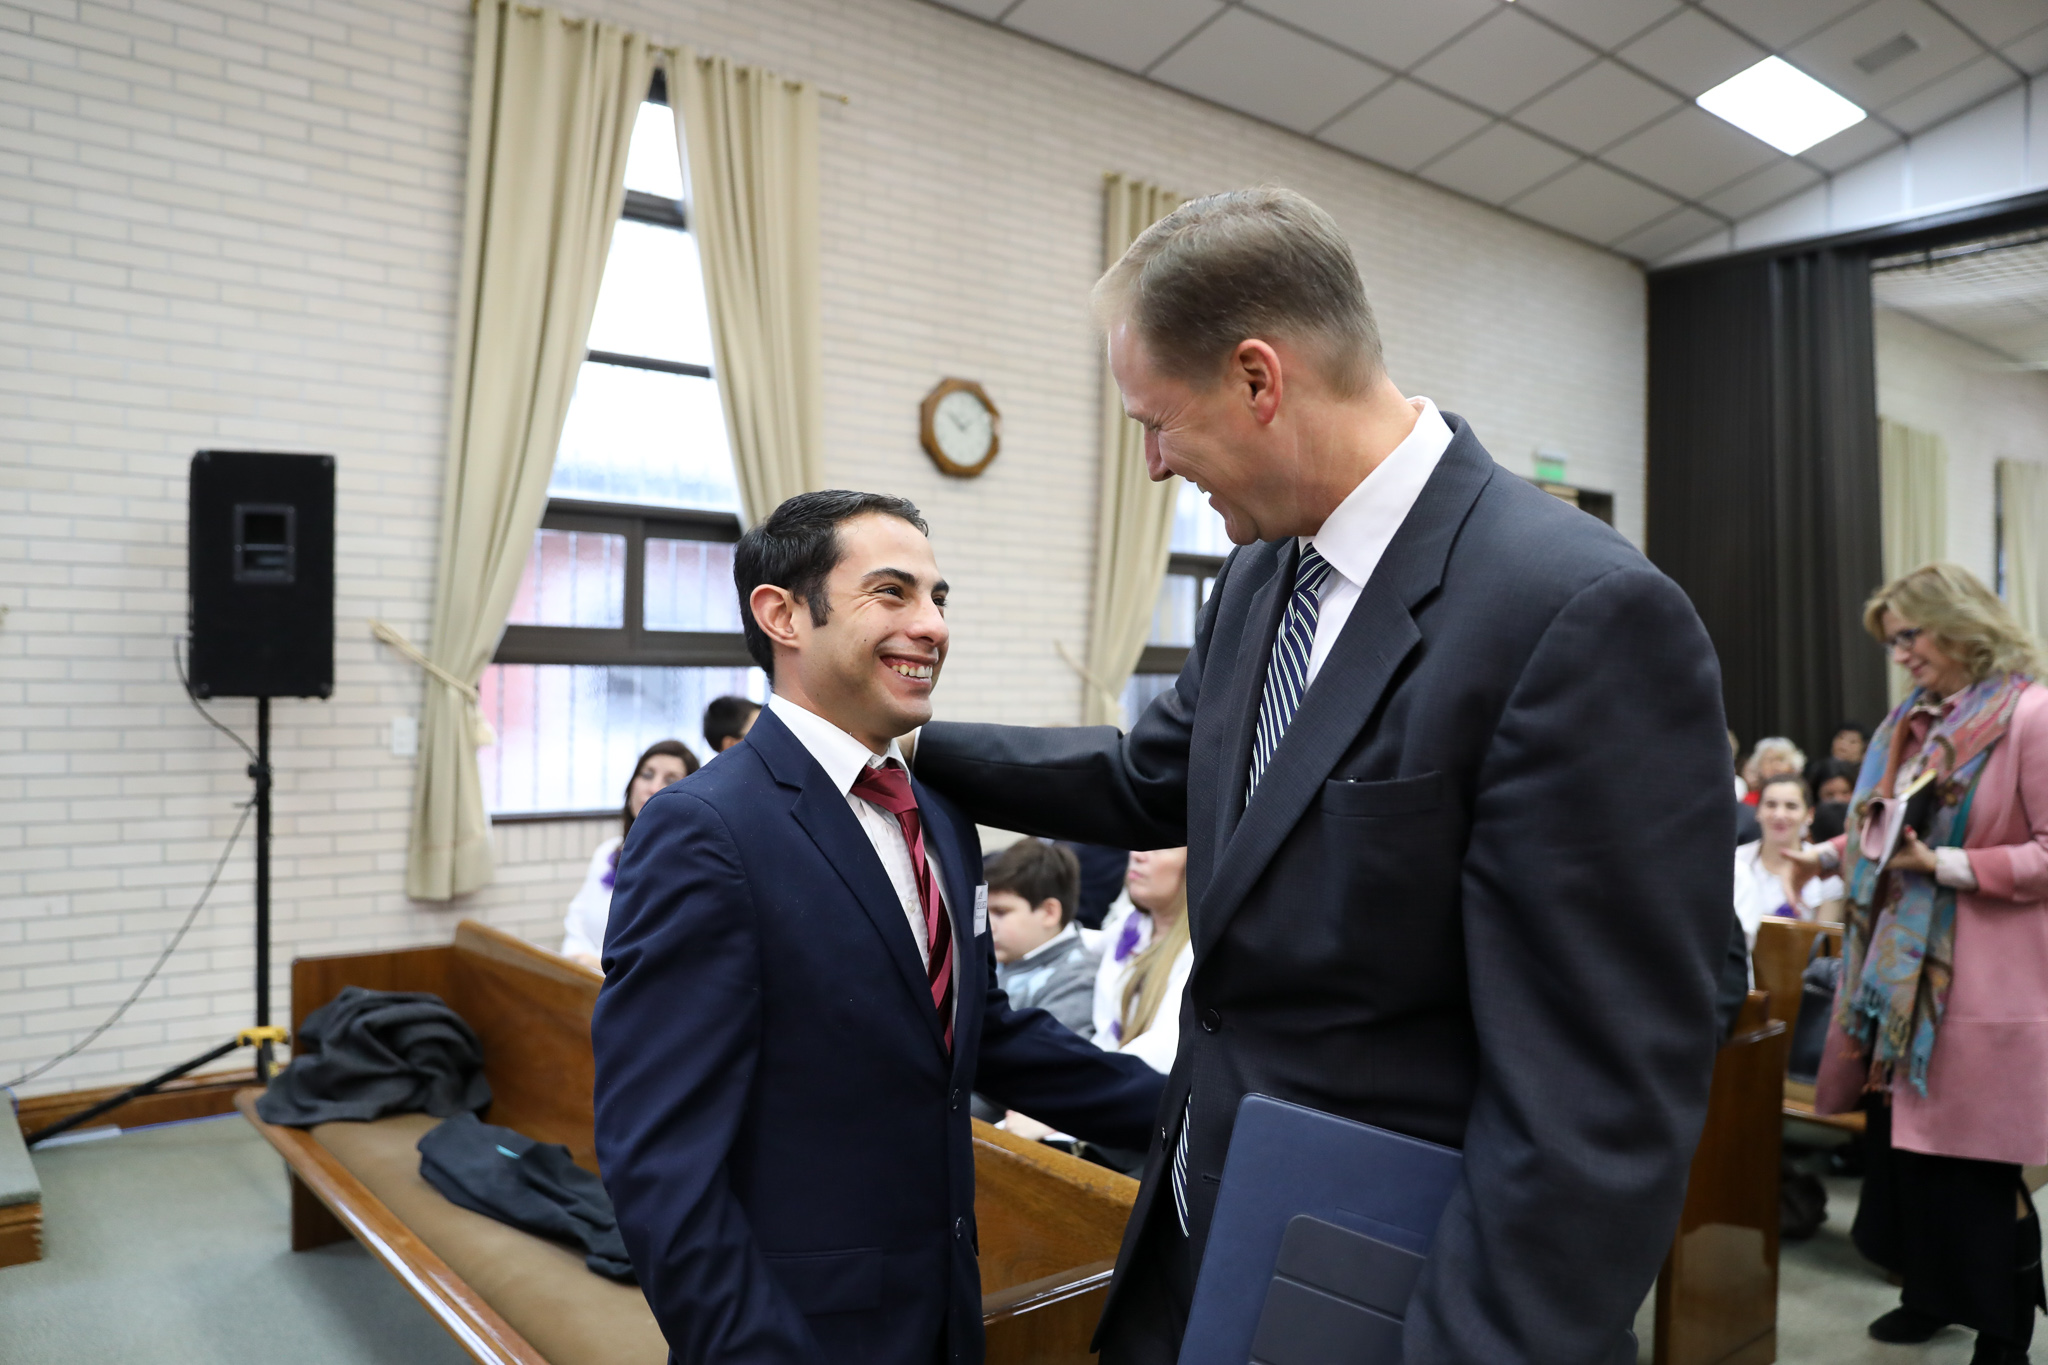 Elder Mark A. Bragg speaks with a member in the Tierra del Fuego Argentina Stake on June 2, 2019.